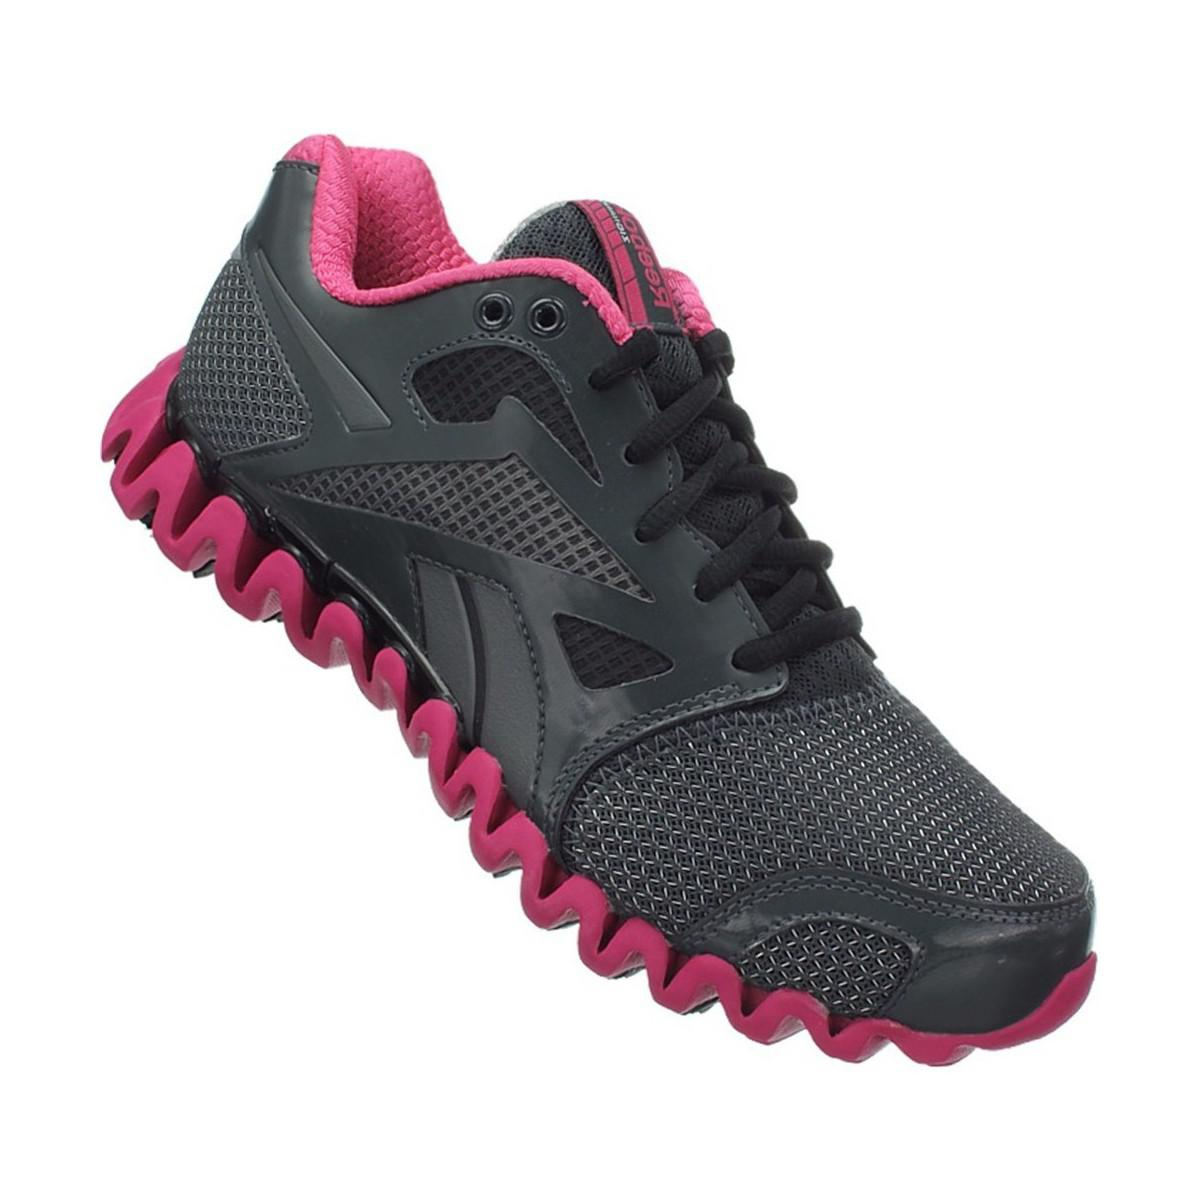 1c71d12654b Reebok Zignano Fly 2 W Women s Running Trainers In Multicolour - Lyst